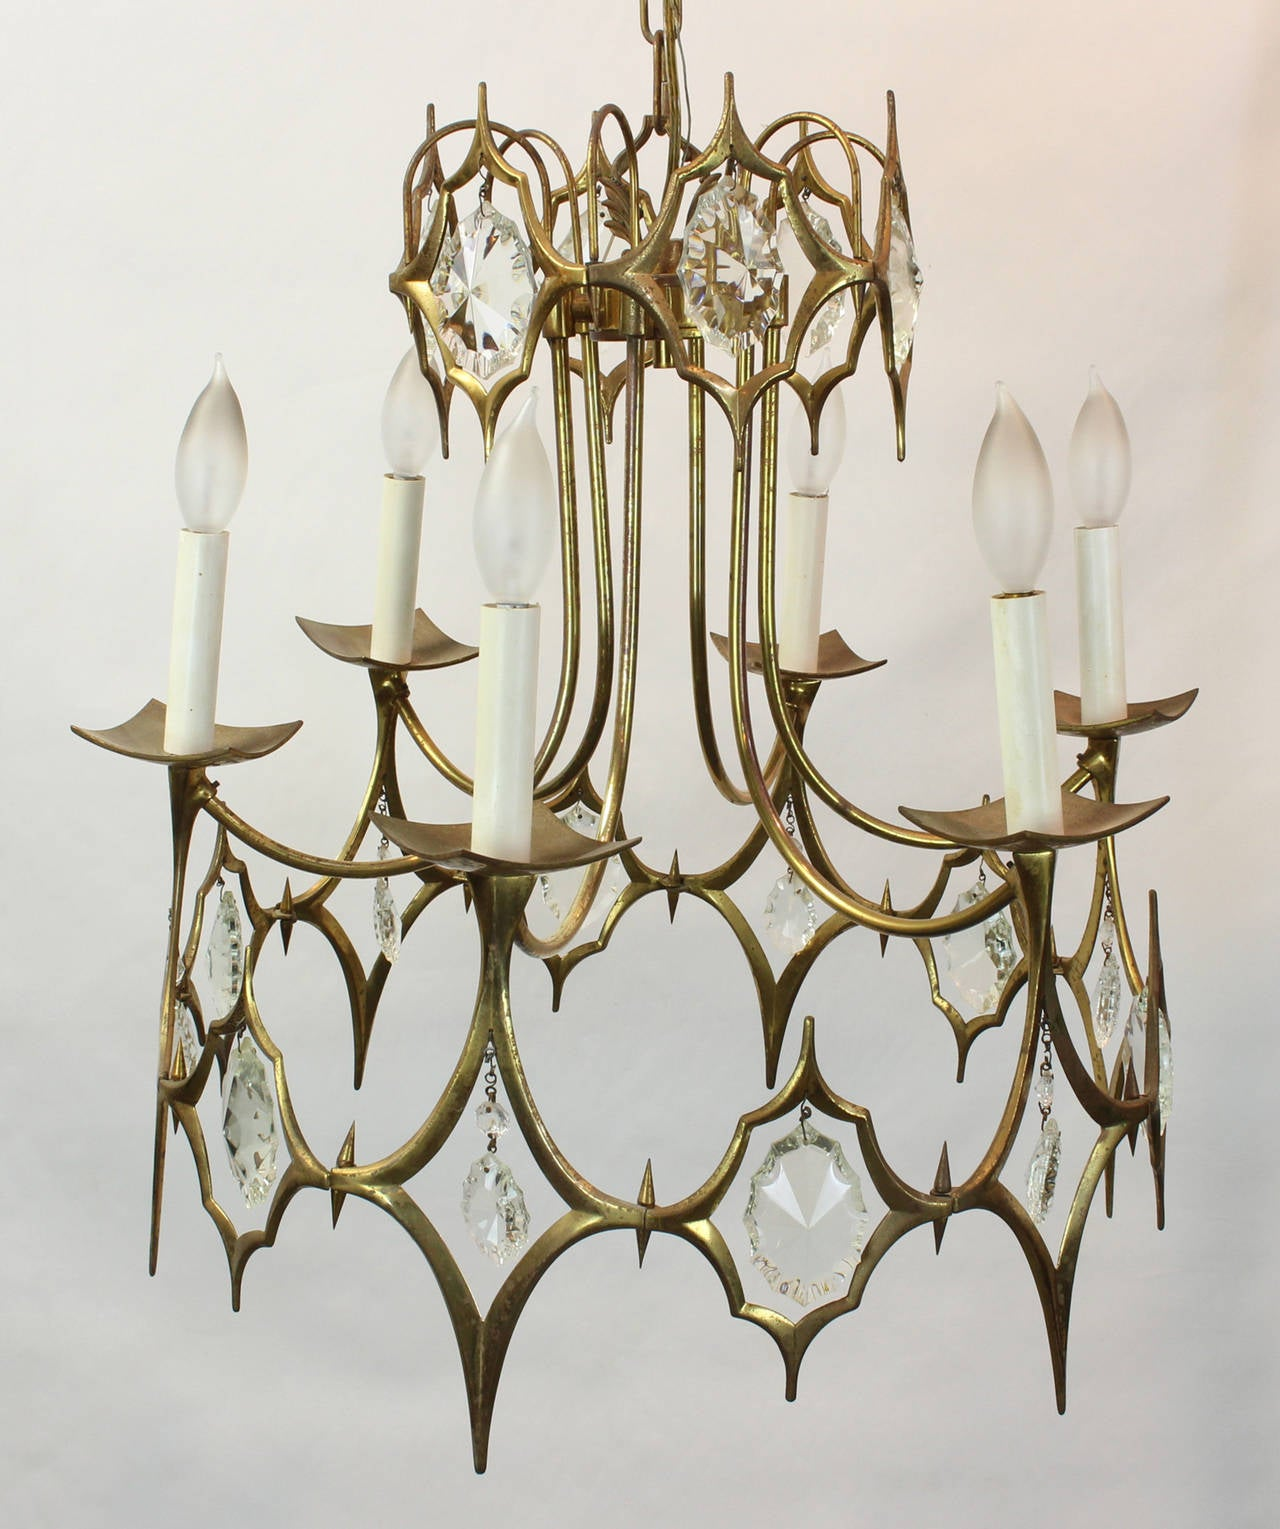 Italian Brass And Crystal Chandelier At 1stdibs